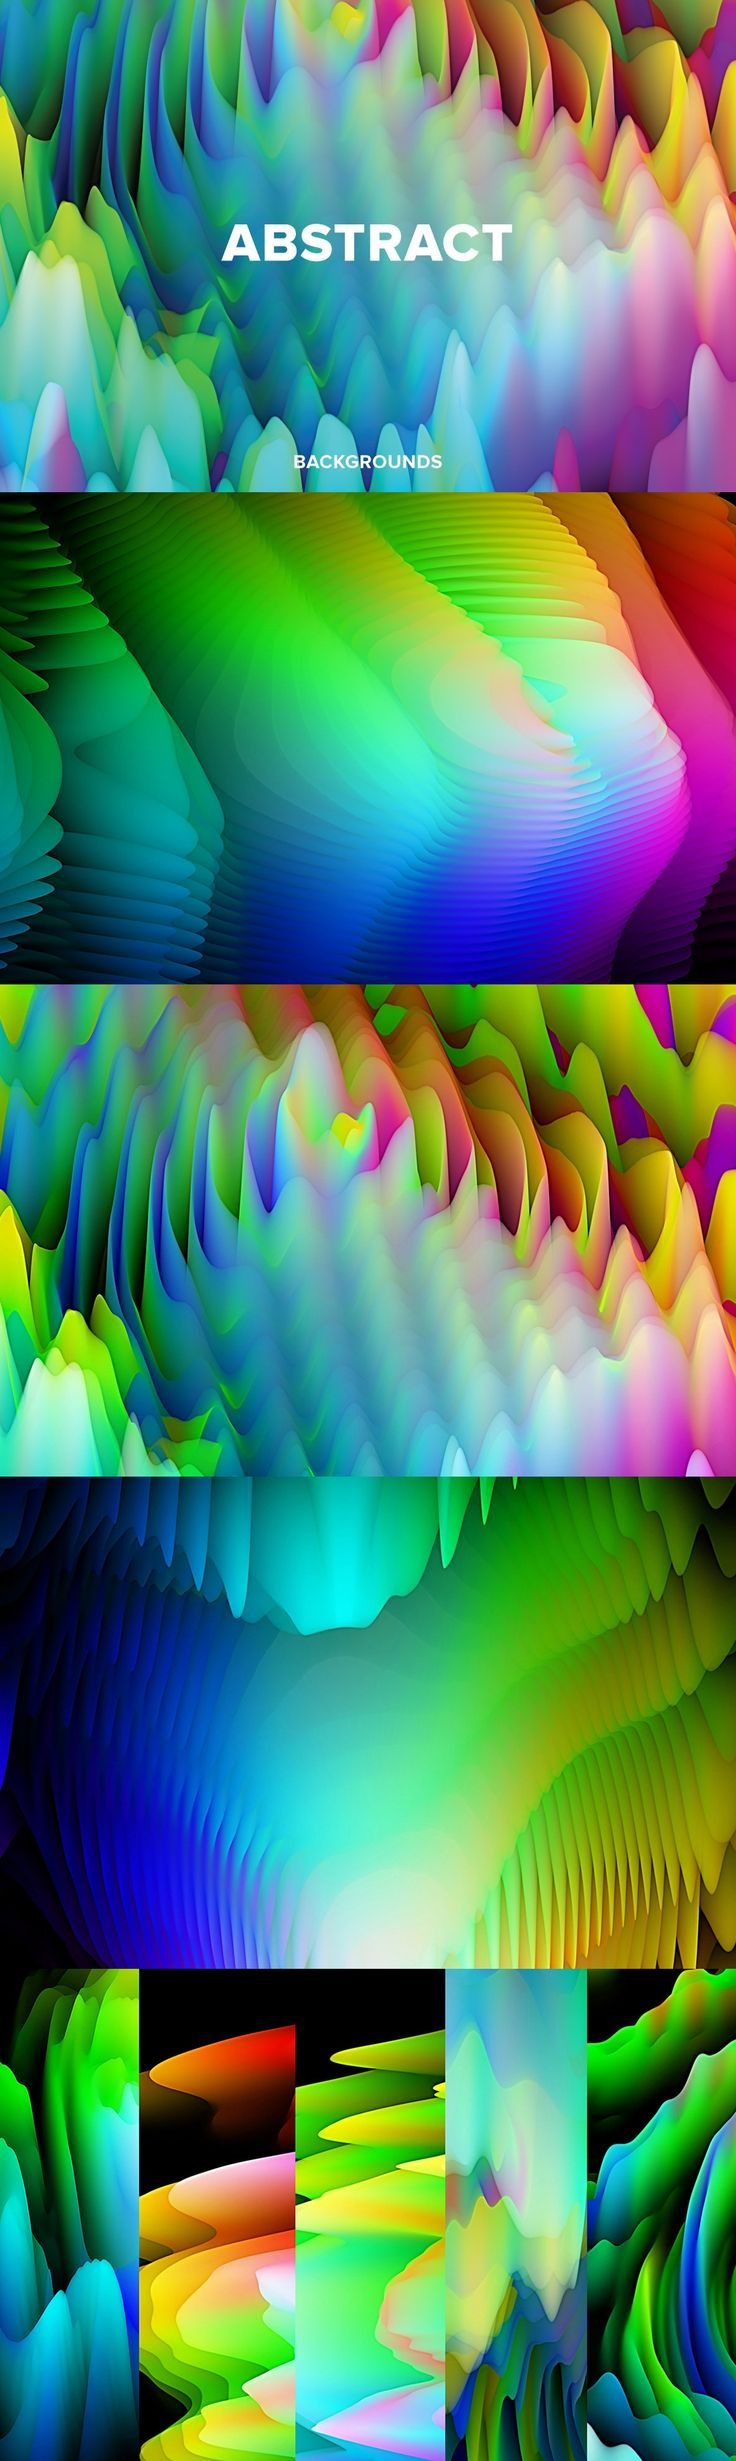 Abstract Backgrounds - Graphics - YouWorkForThem